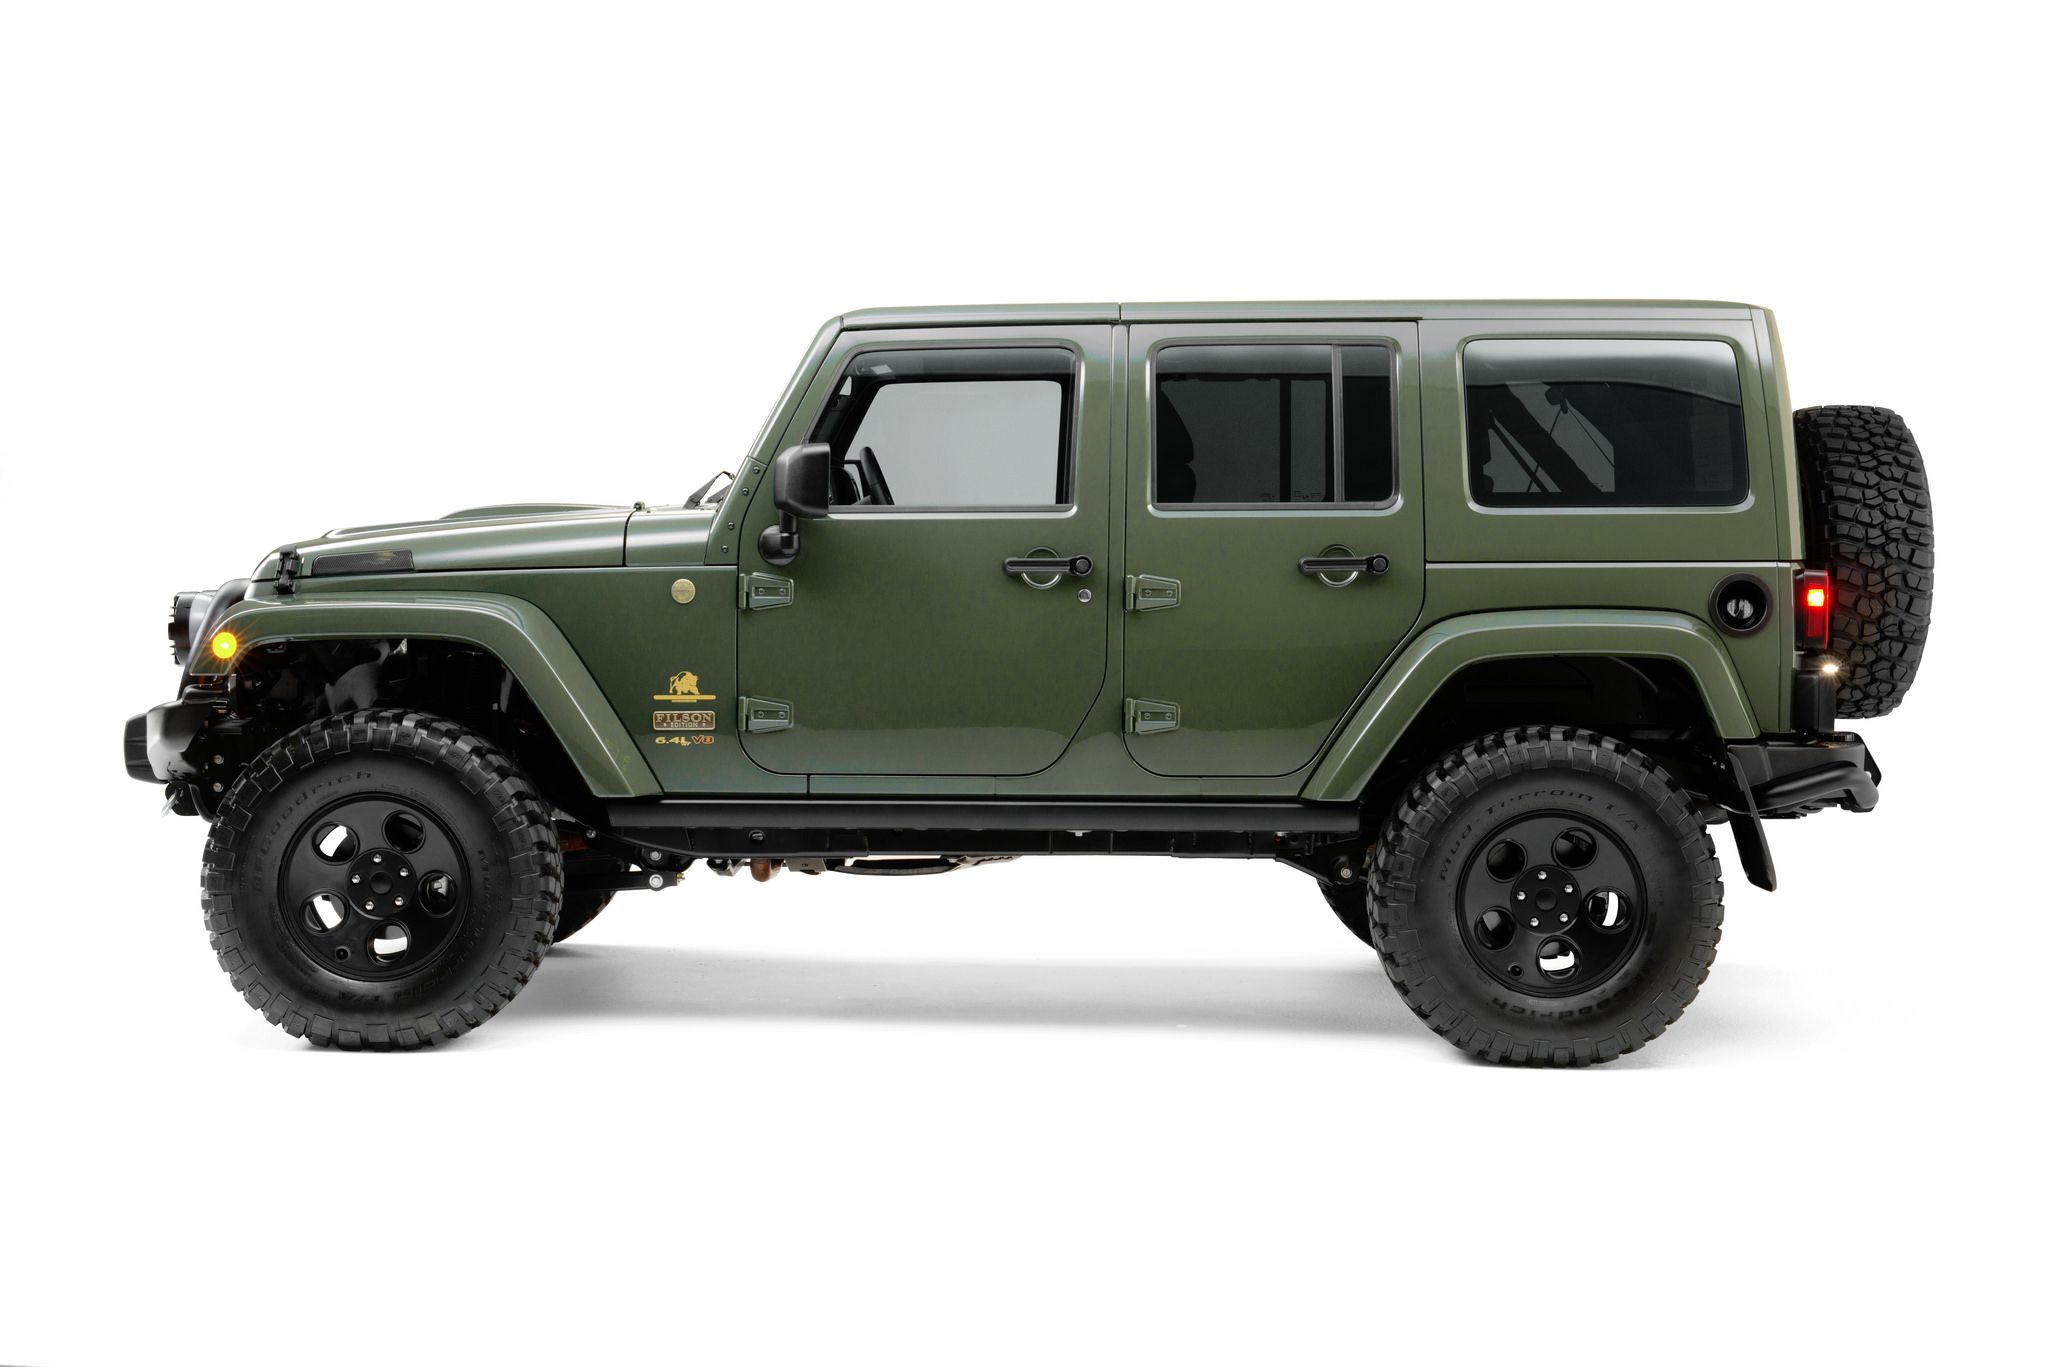 Filson X Aev Limited Edition Jeep Wrangler Camion Jeep Jeep Voiture